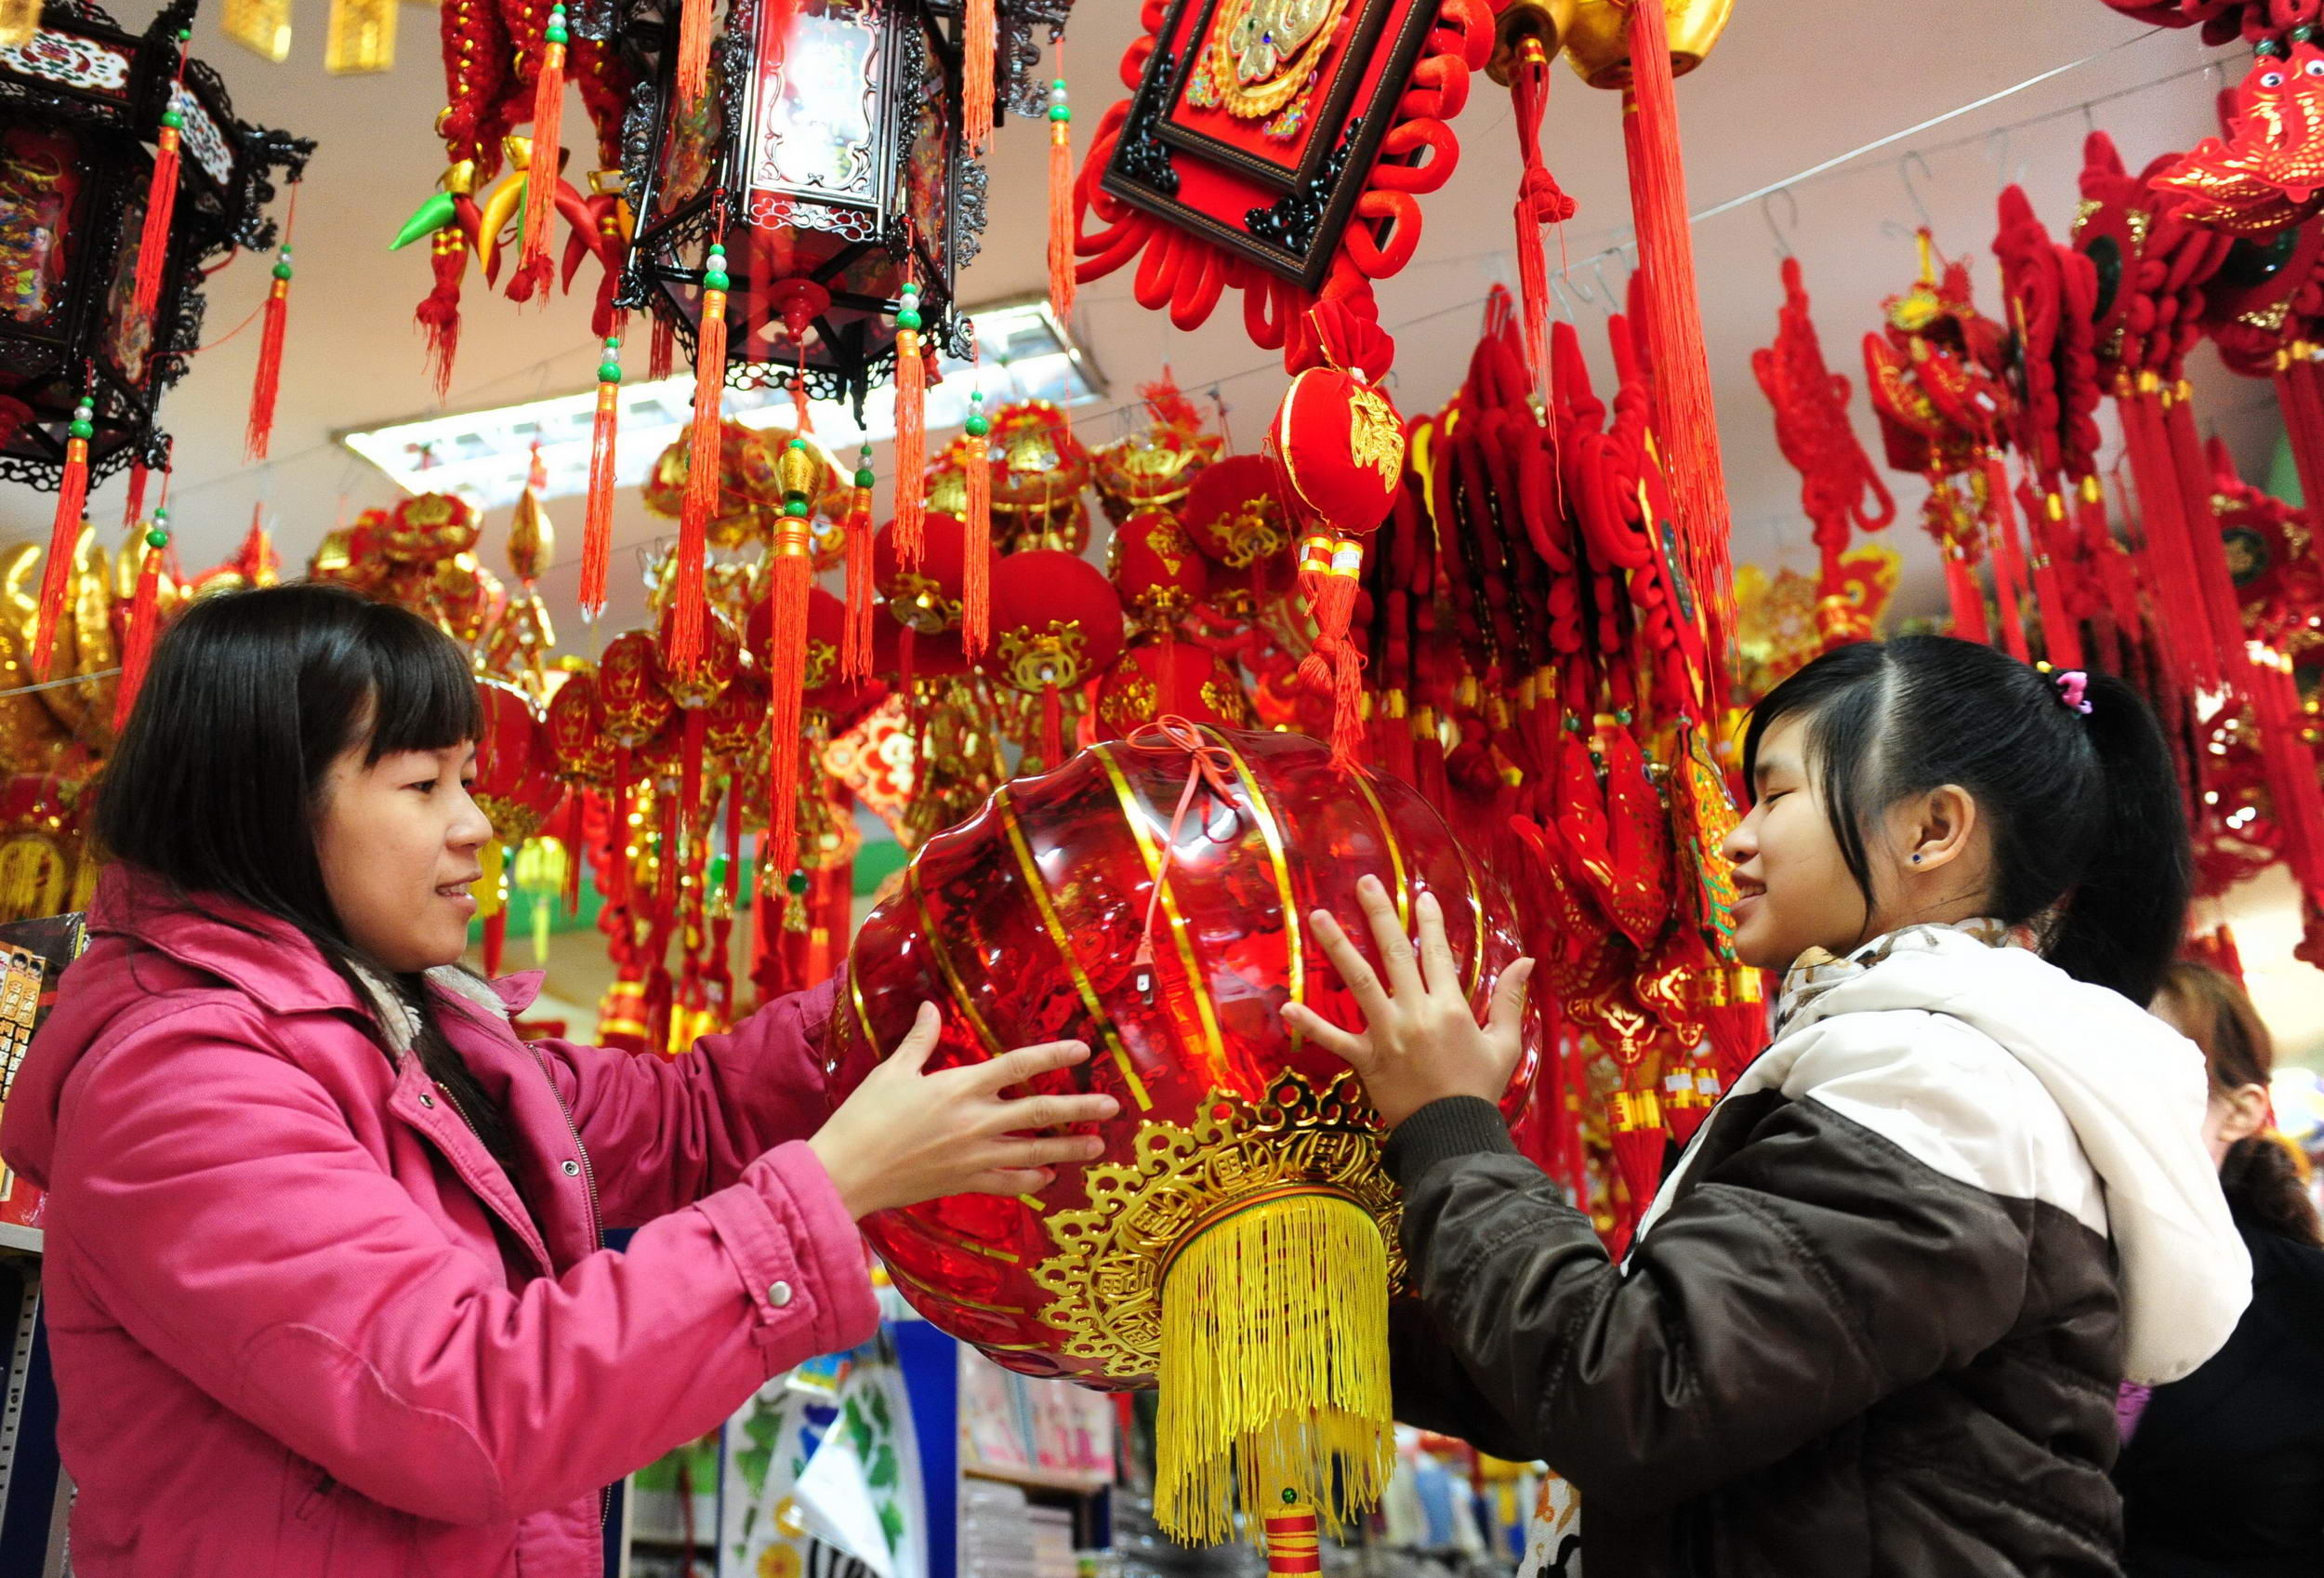 10 new consumption trends in China